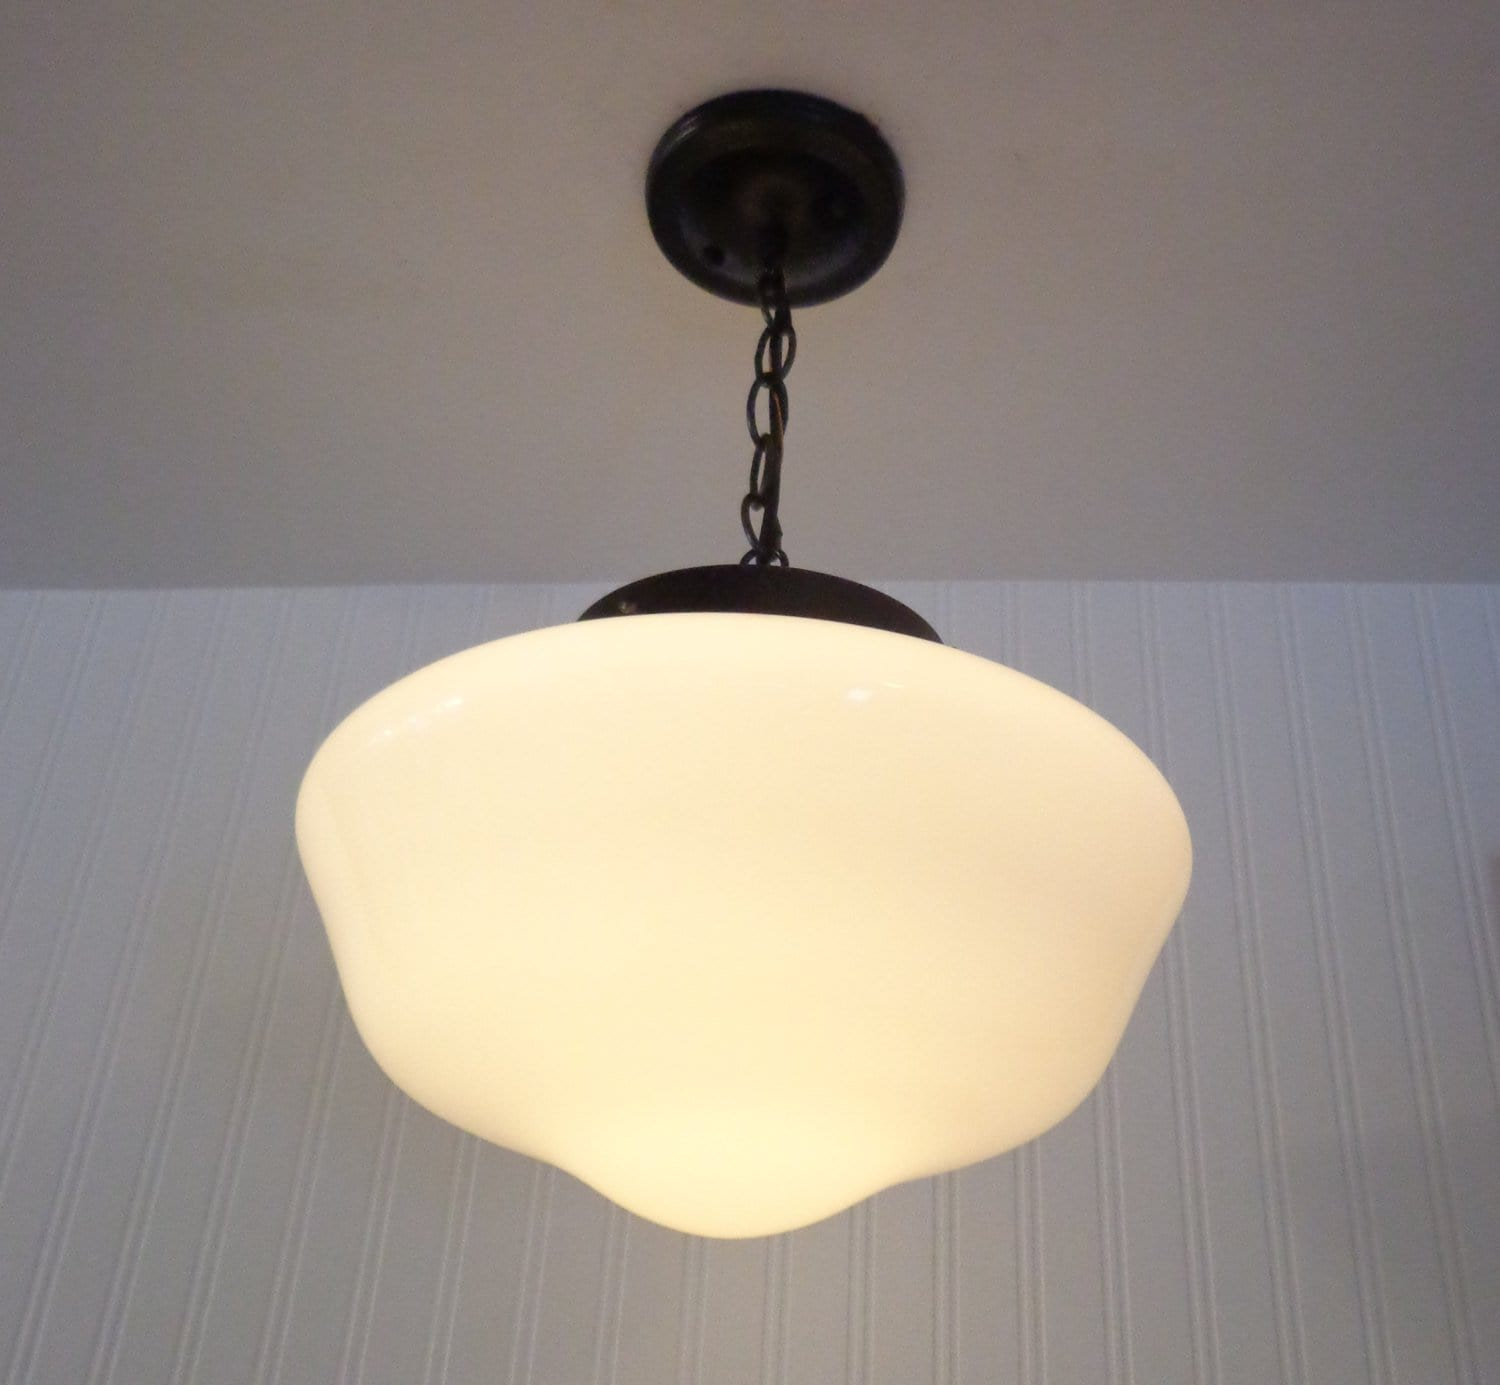 Milk glass schoolhouse pendant light fixture large the lamp goods aloadofball Image collections